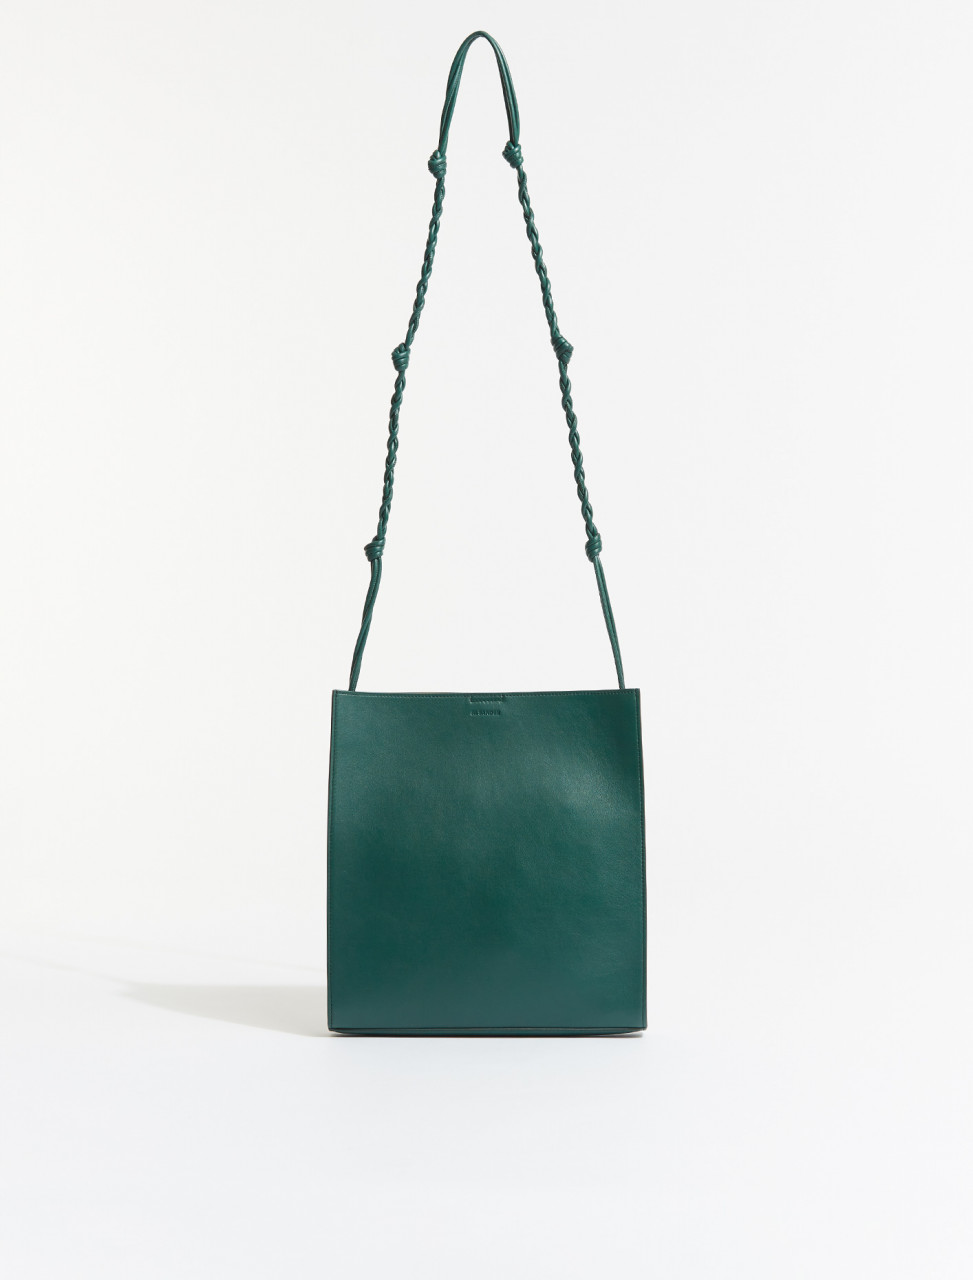 JSMS853172-MSB00035N-308 JIL SANDER TANGLE MEDIUM BAG IN DARK GREEN